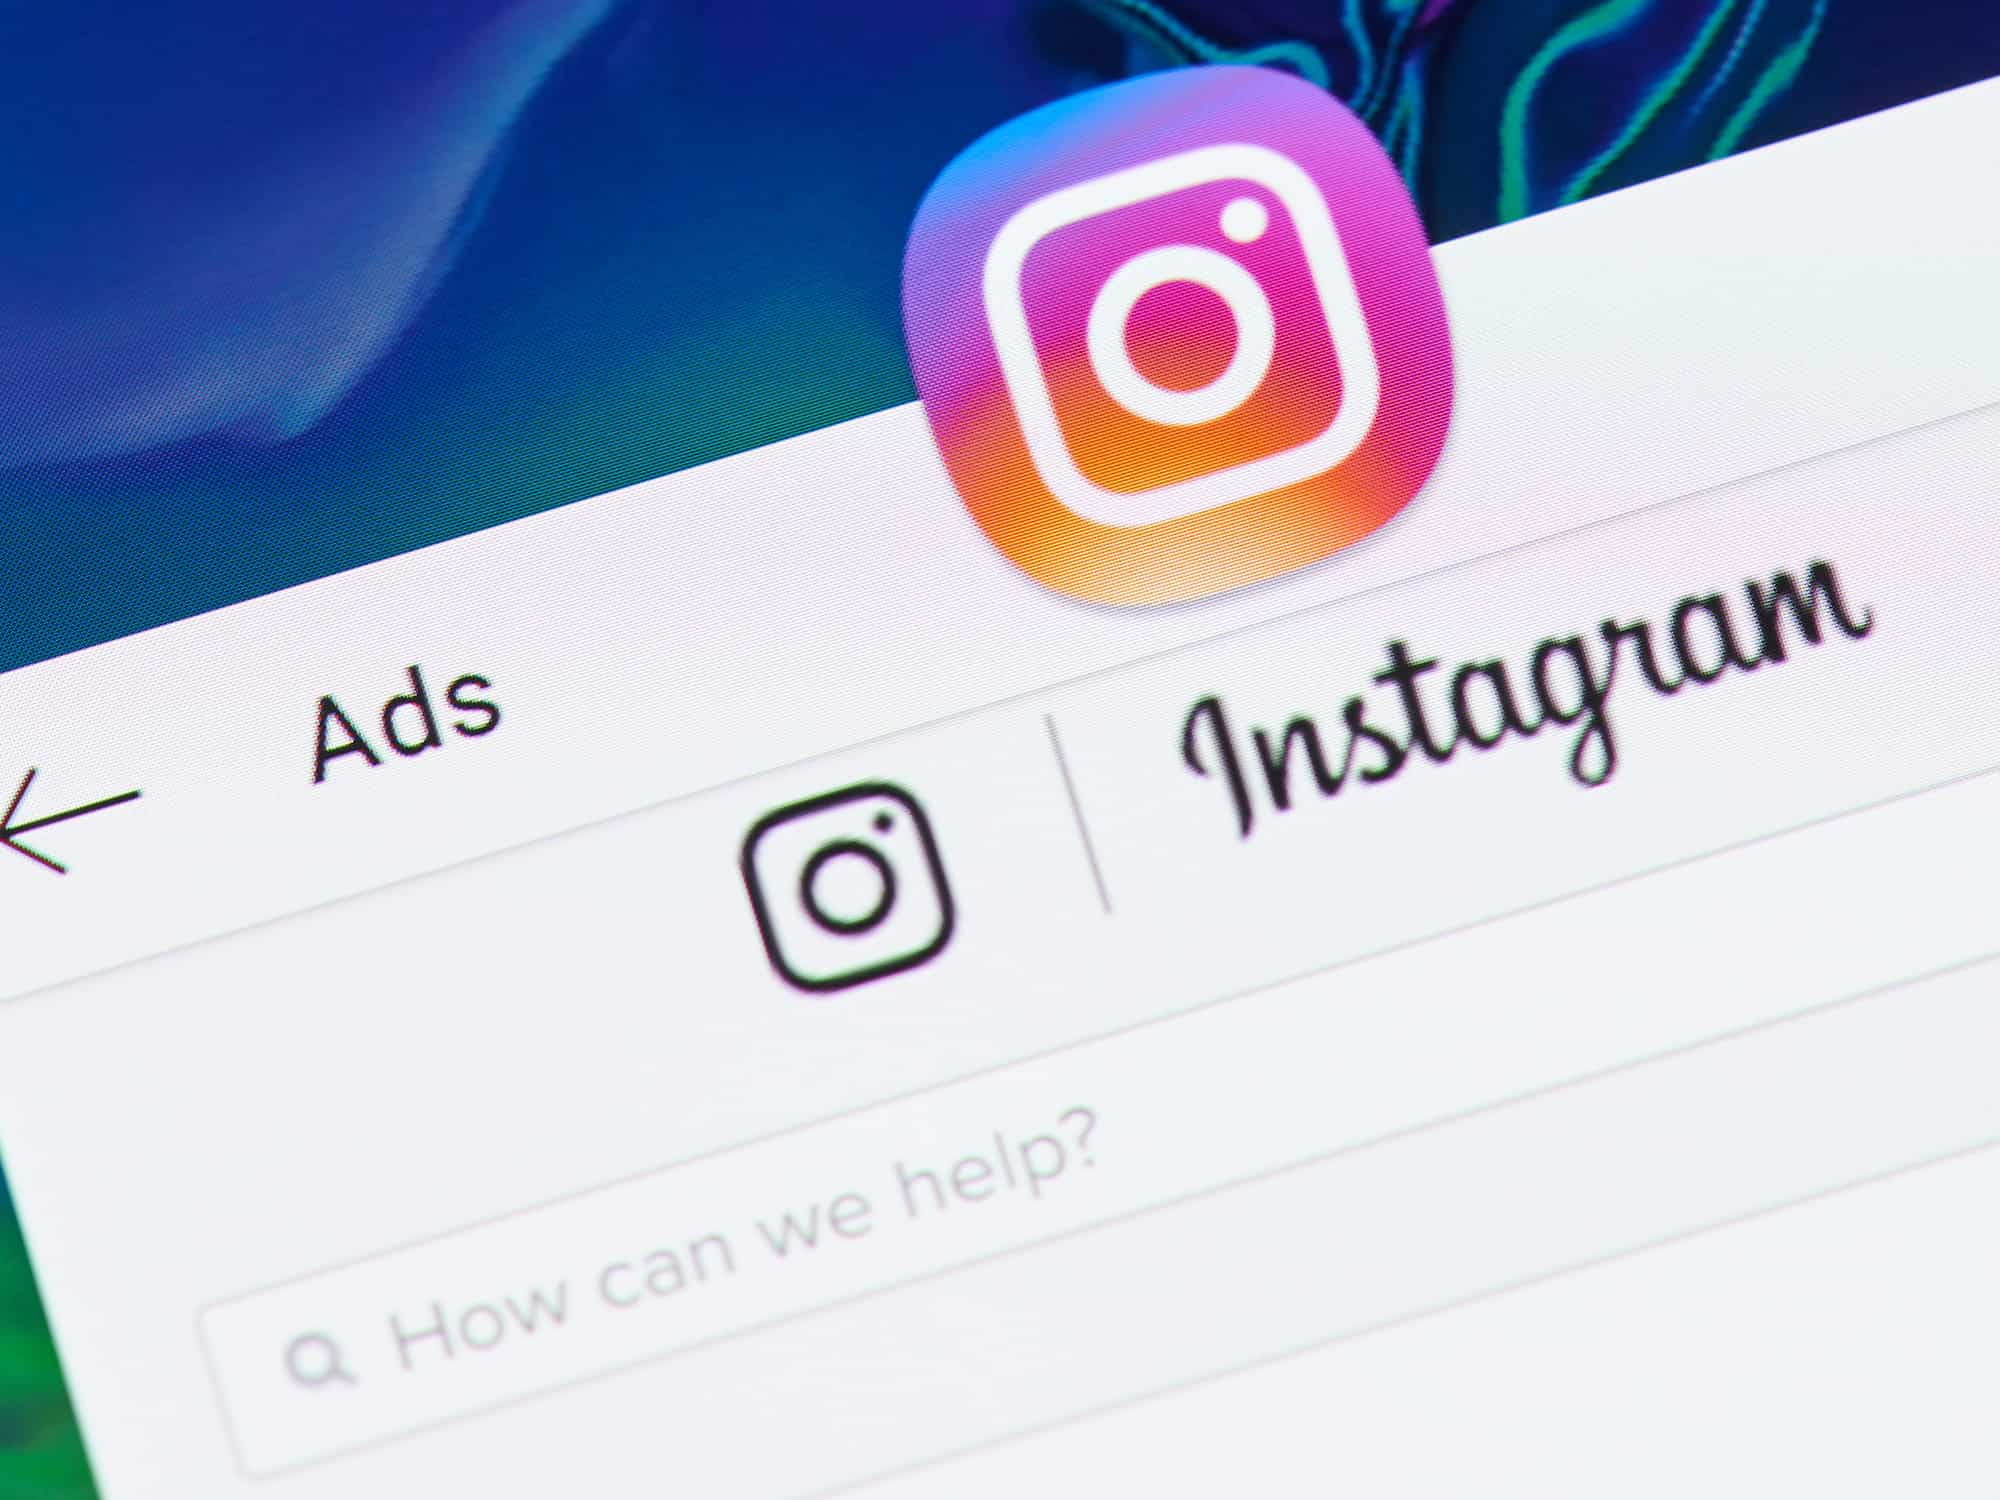 6 Tips to Create Great Instagram Ads for Your Dental Practice